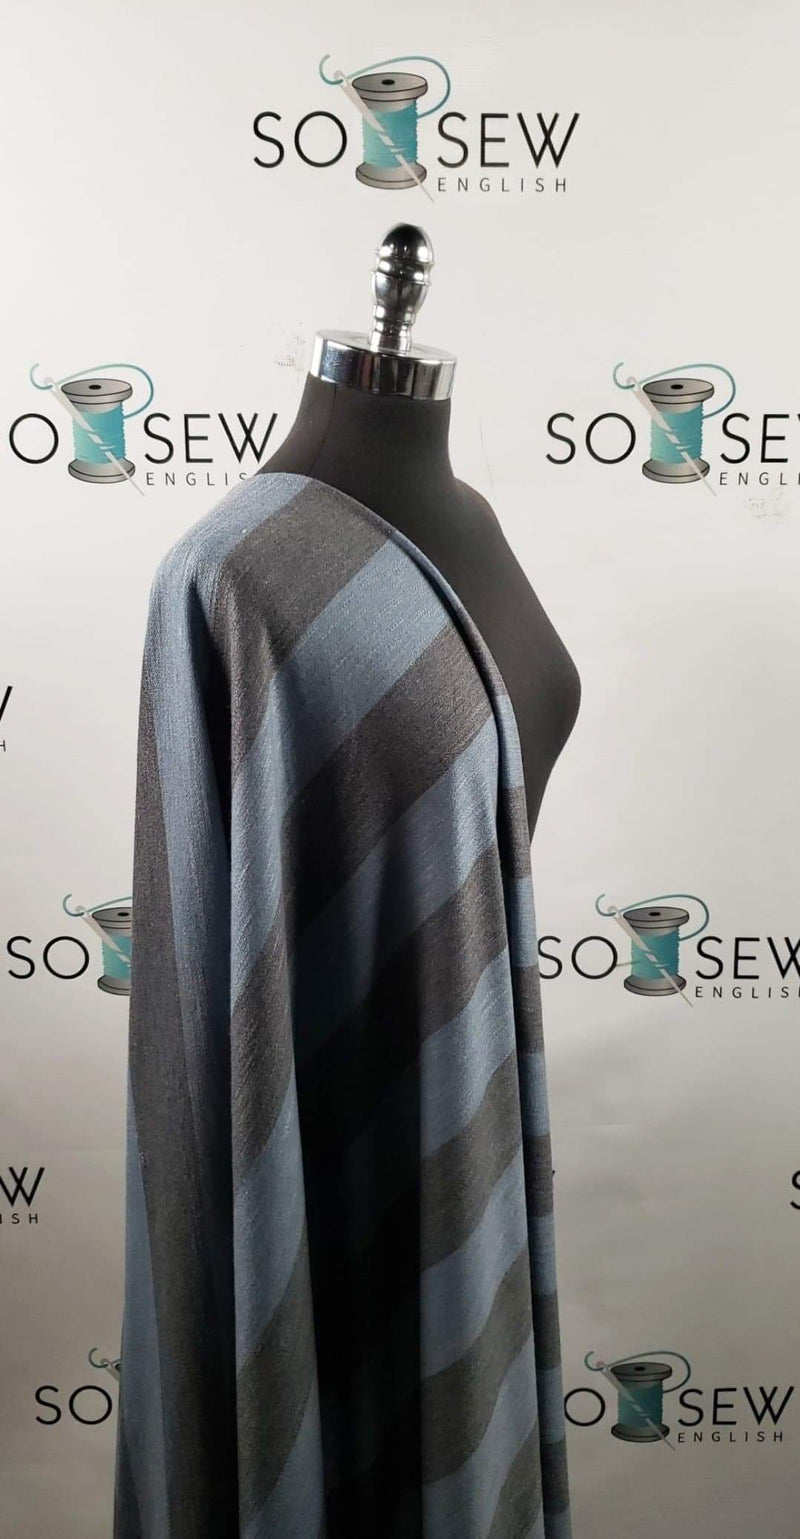 Teal/Charcoal Stripe - Right Side Loop French Terry - By the yard